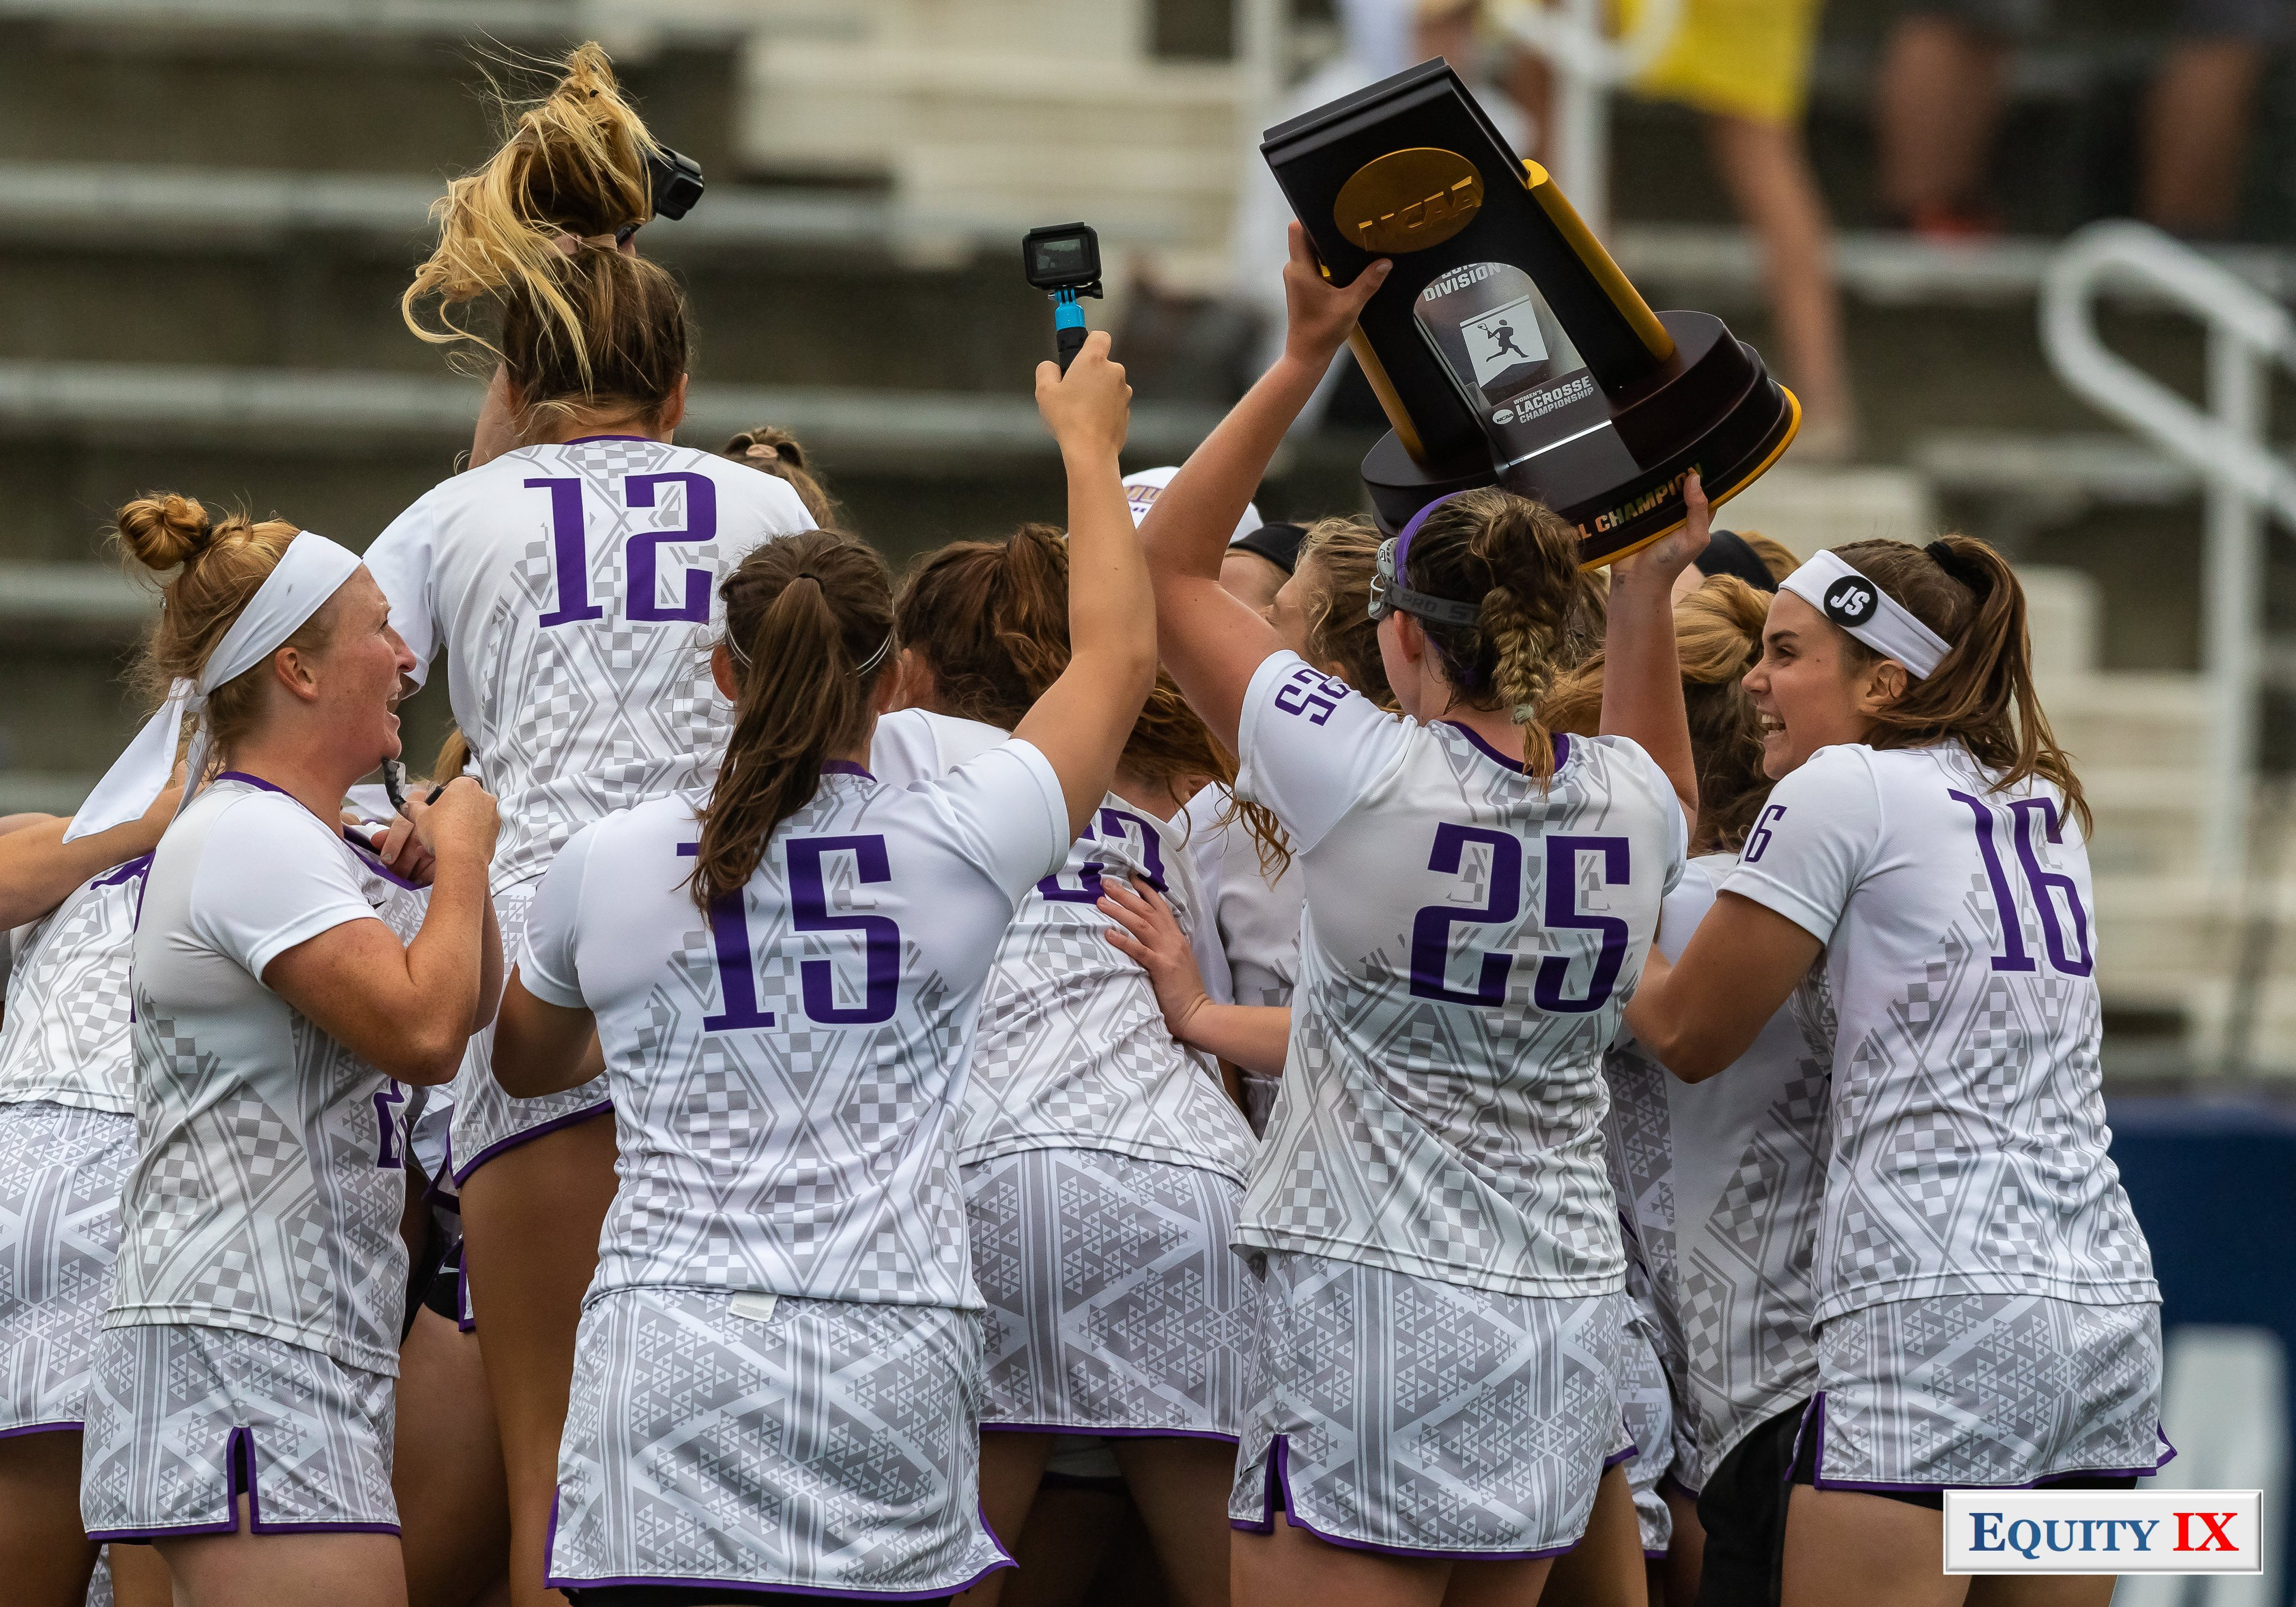 JMU women's lacrosse team celebrate winning national title with #25 Haley Warden raising the NCAA Women's Lacrosse National Champions trophy above head with teammates jumping next to her and holding a small camera to capture the special moment - 2018 NCAA Women's Lacrosse Champions © Equity IX - SportsOgram - Leigh Ernst Friestedt